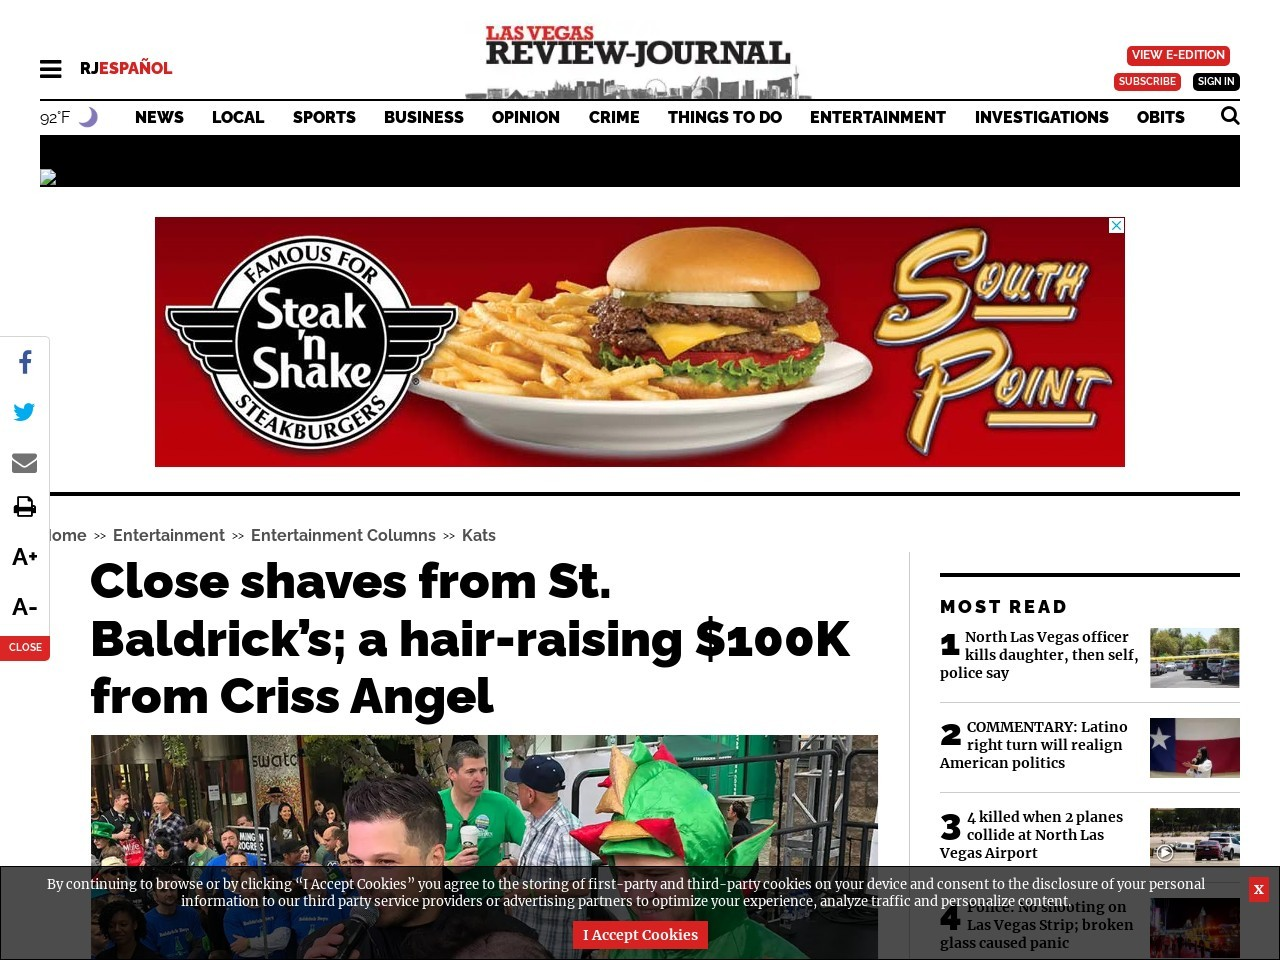 Close shaves from St. Baldrick's; a hair-raising $100K from Criss Angel